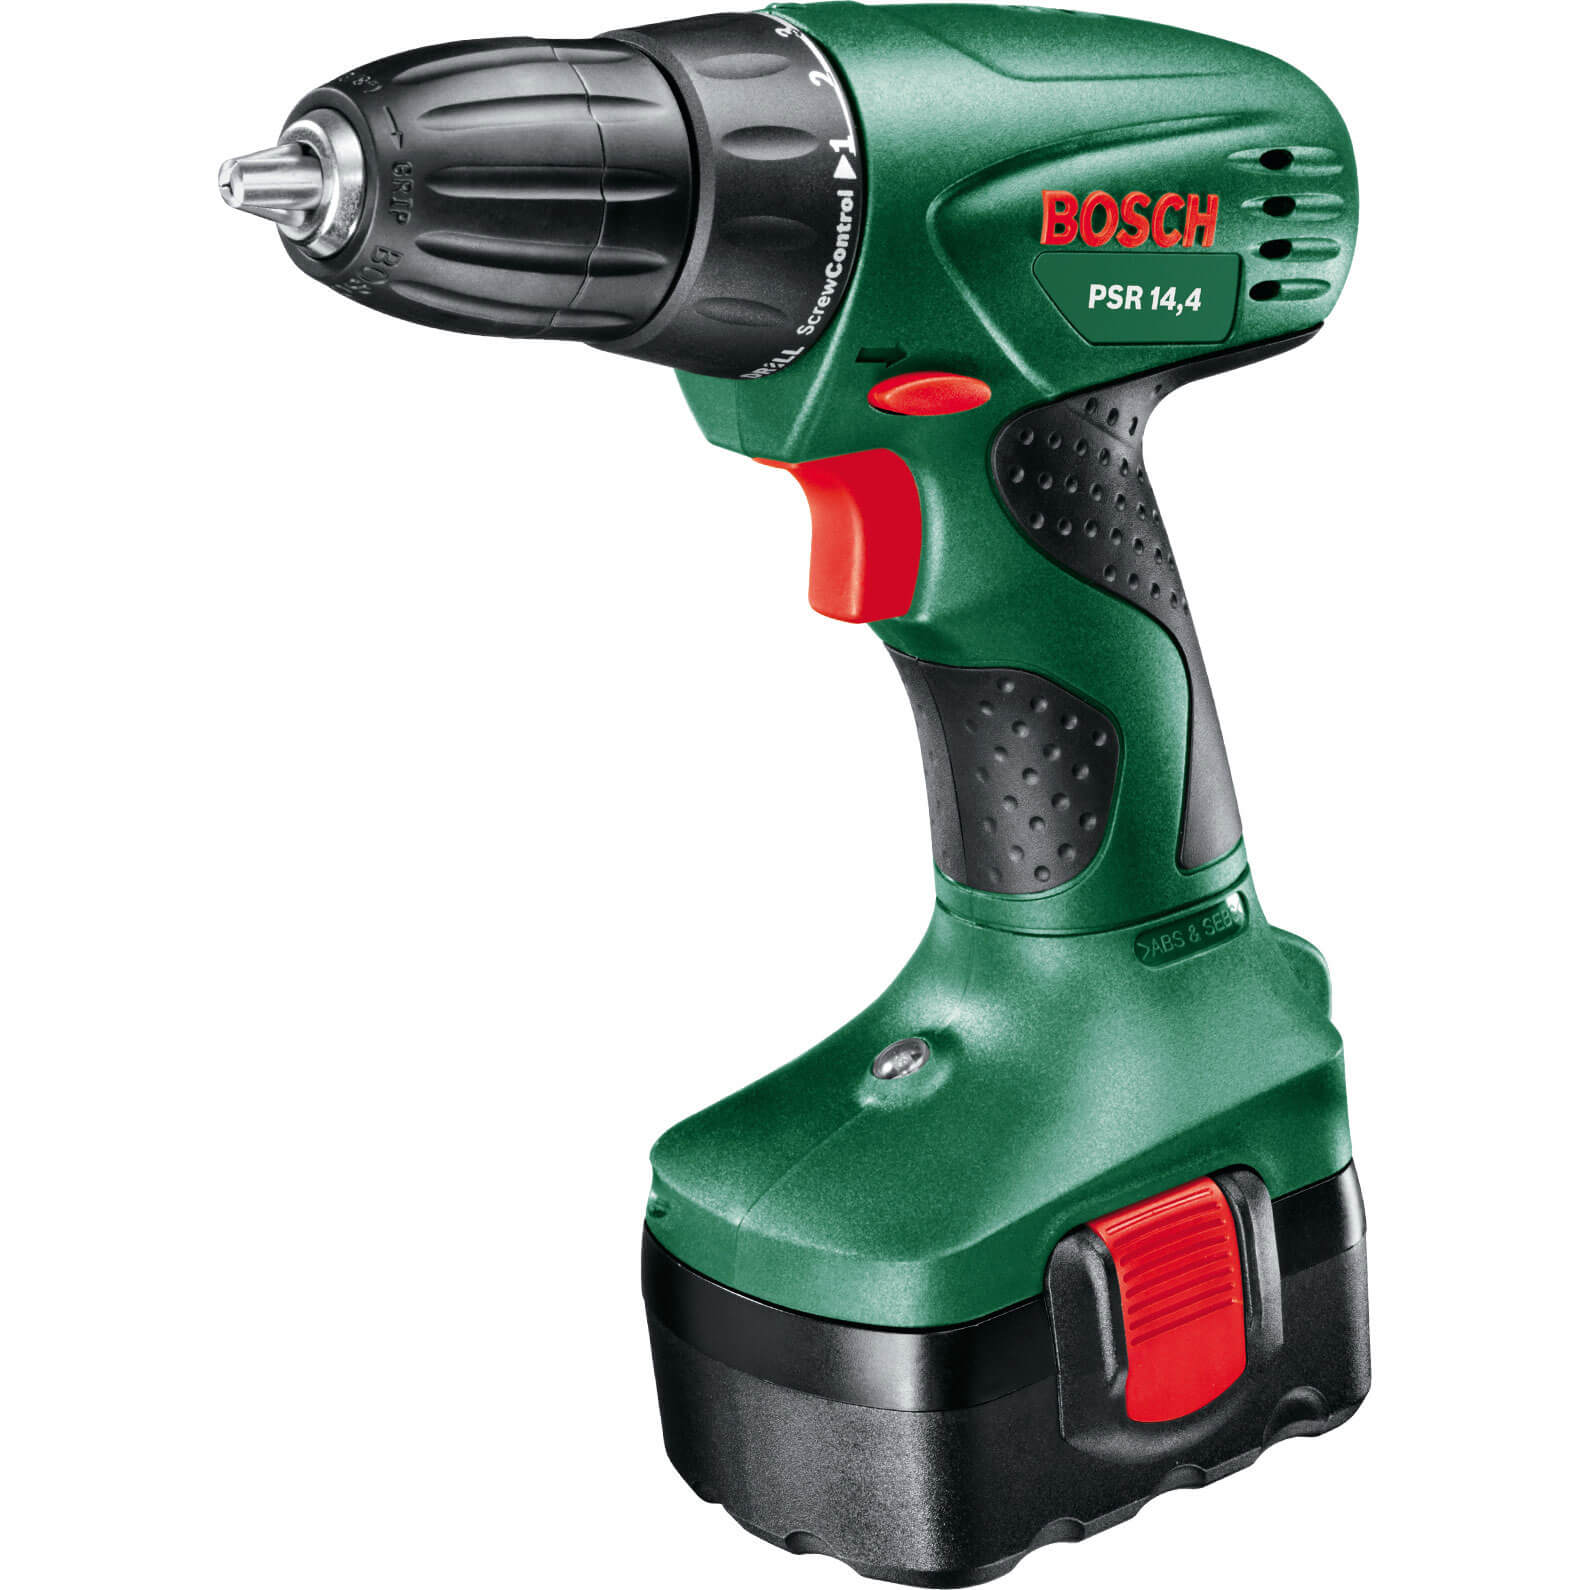 zzz bosch psr cordless drill driver 2 nicad batteries. Black Bedroom Furniture Sets. Home Design Ideas